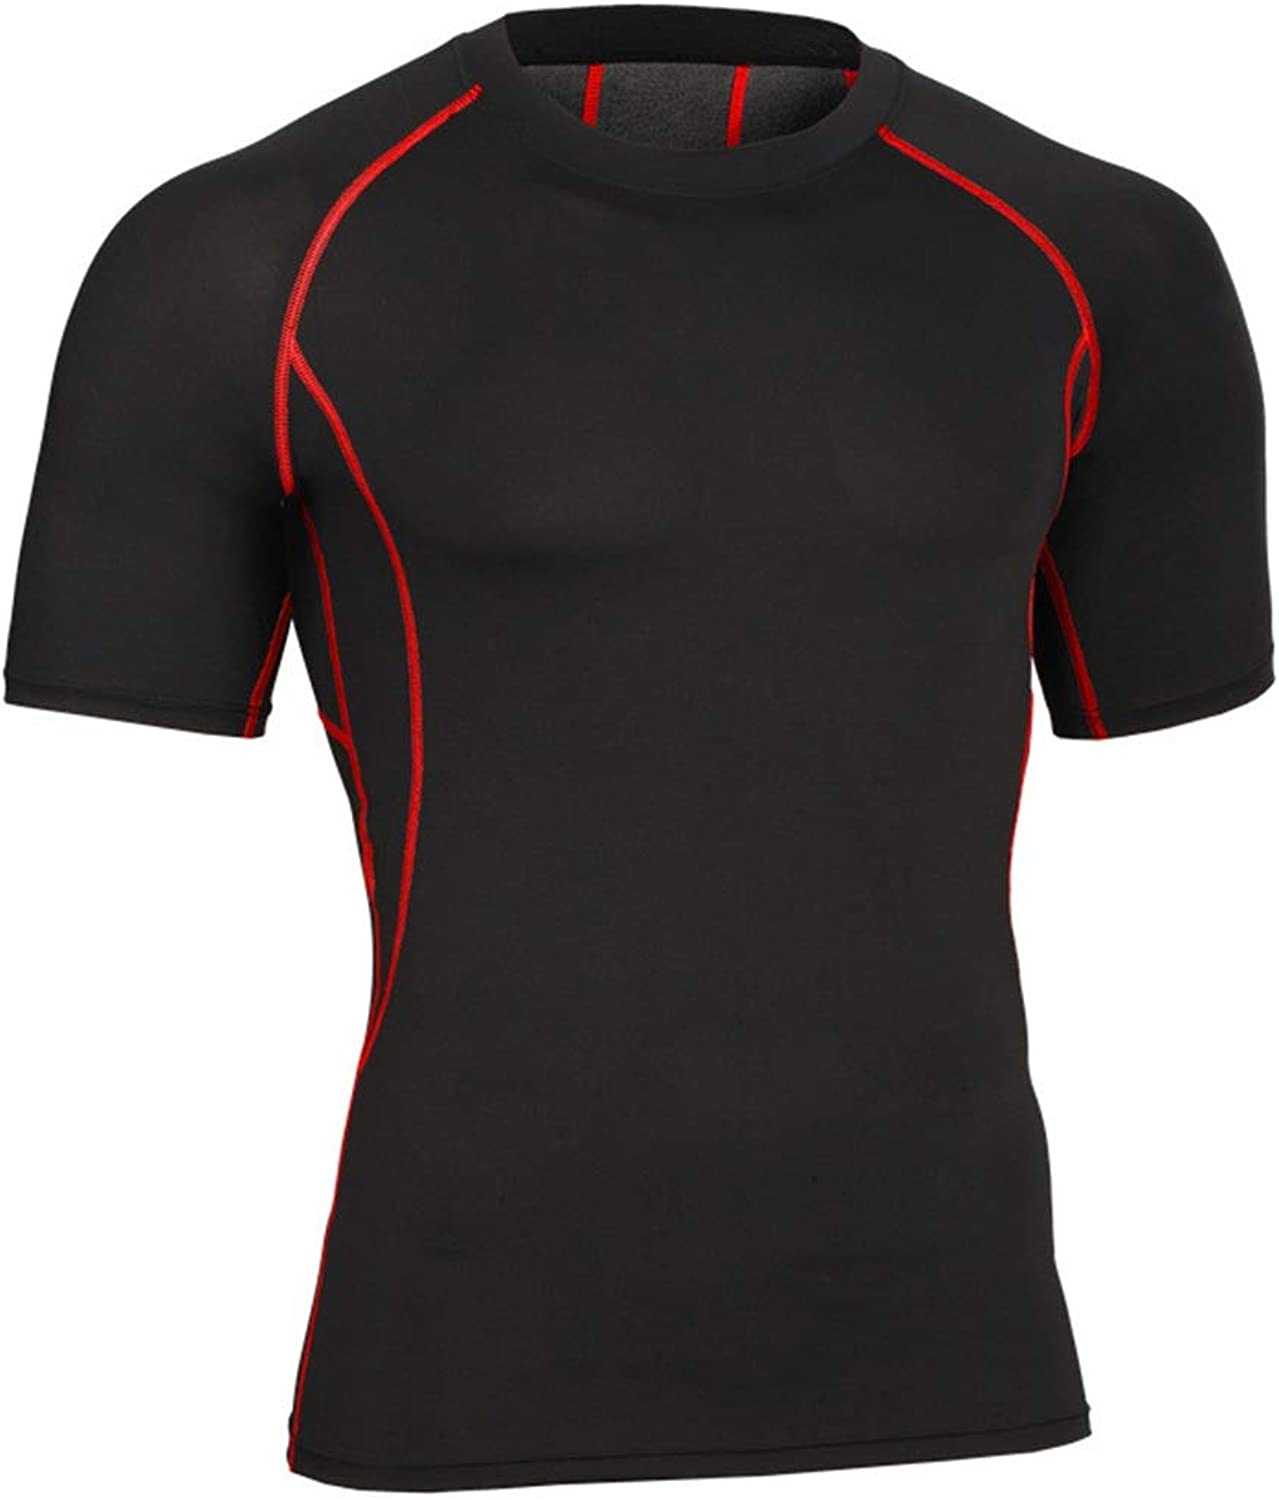 KERVINJESSIE Men's Workout Clothes Sportswear High High High Elasticity Short-Sleeved Sportswear Outdoor Quick-Drying Clothes (color   Black red line, Size   L) c608ea